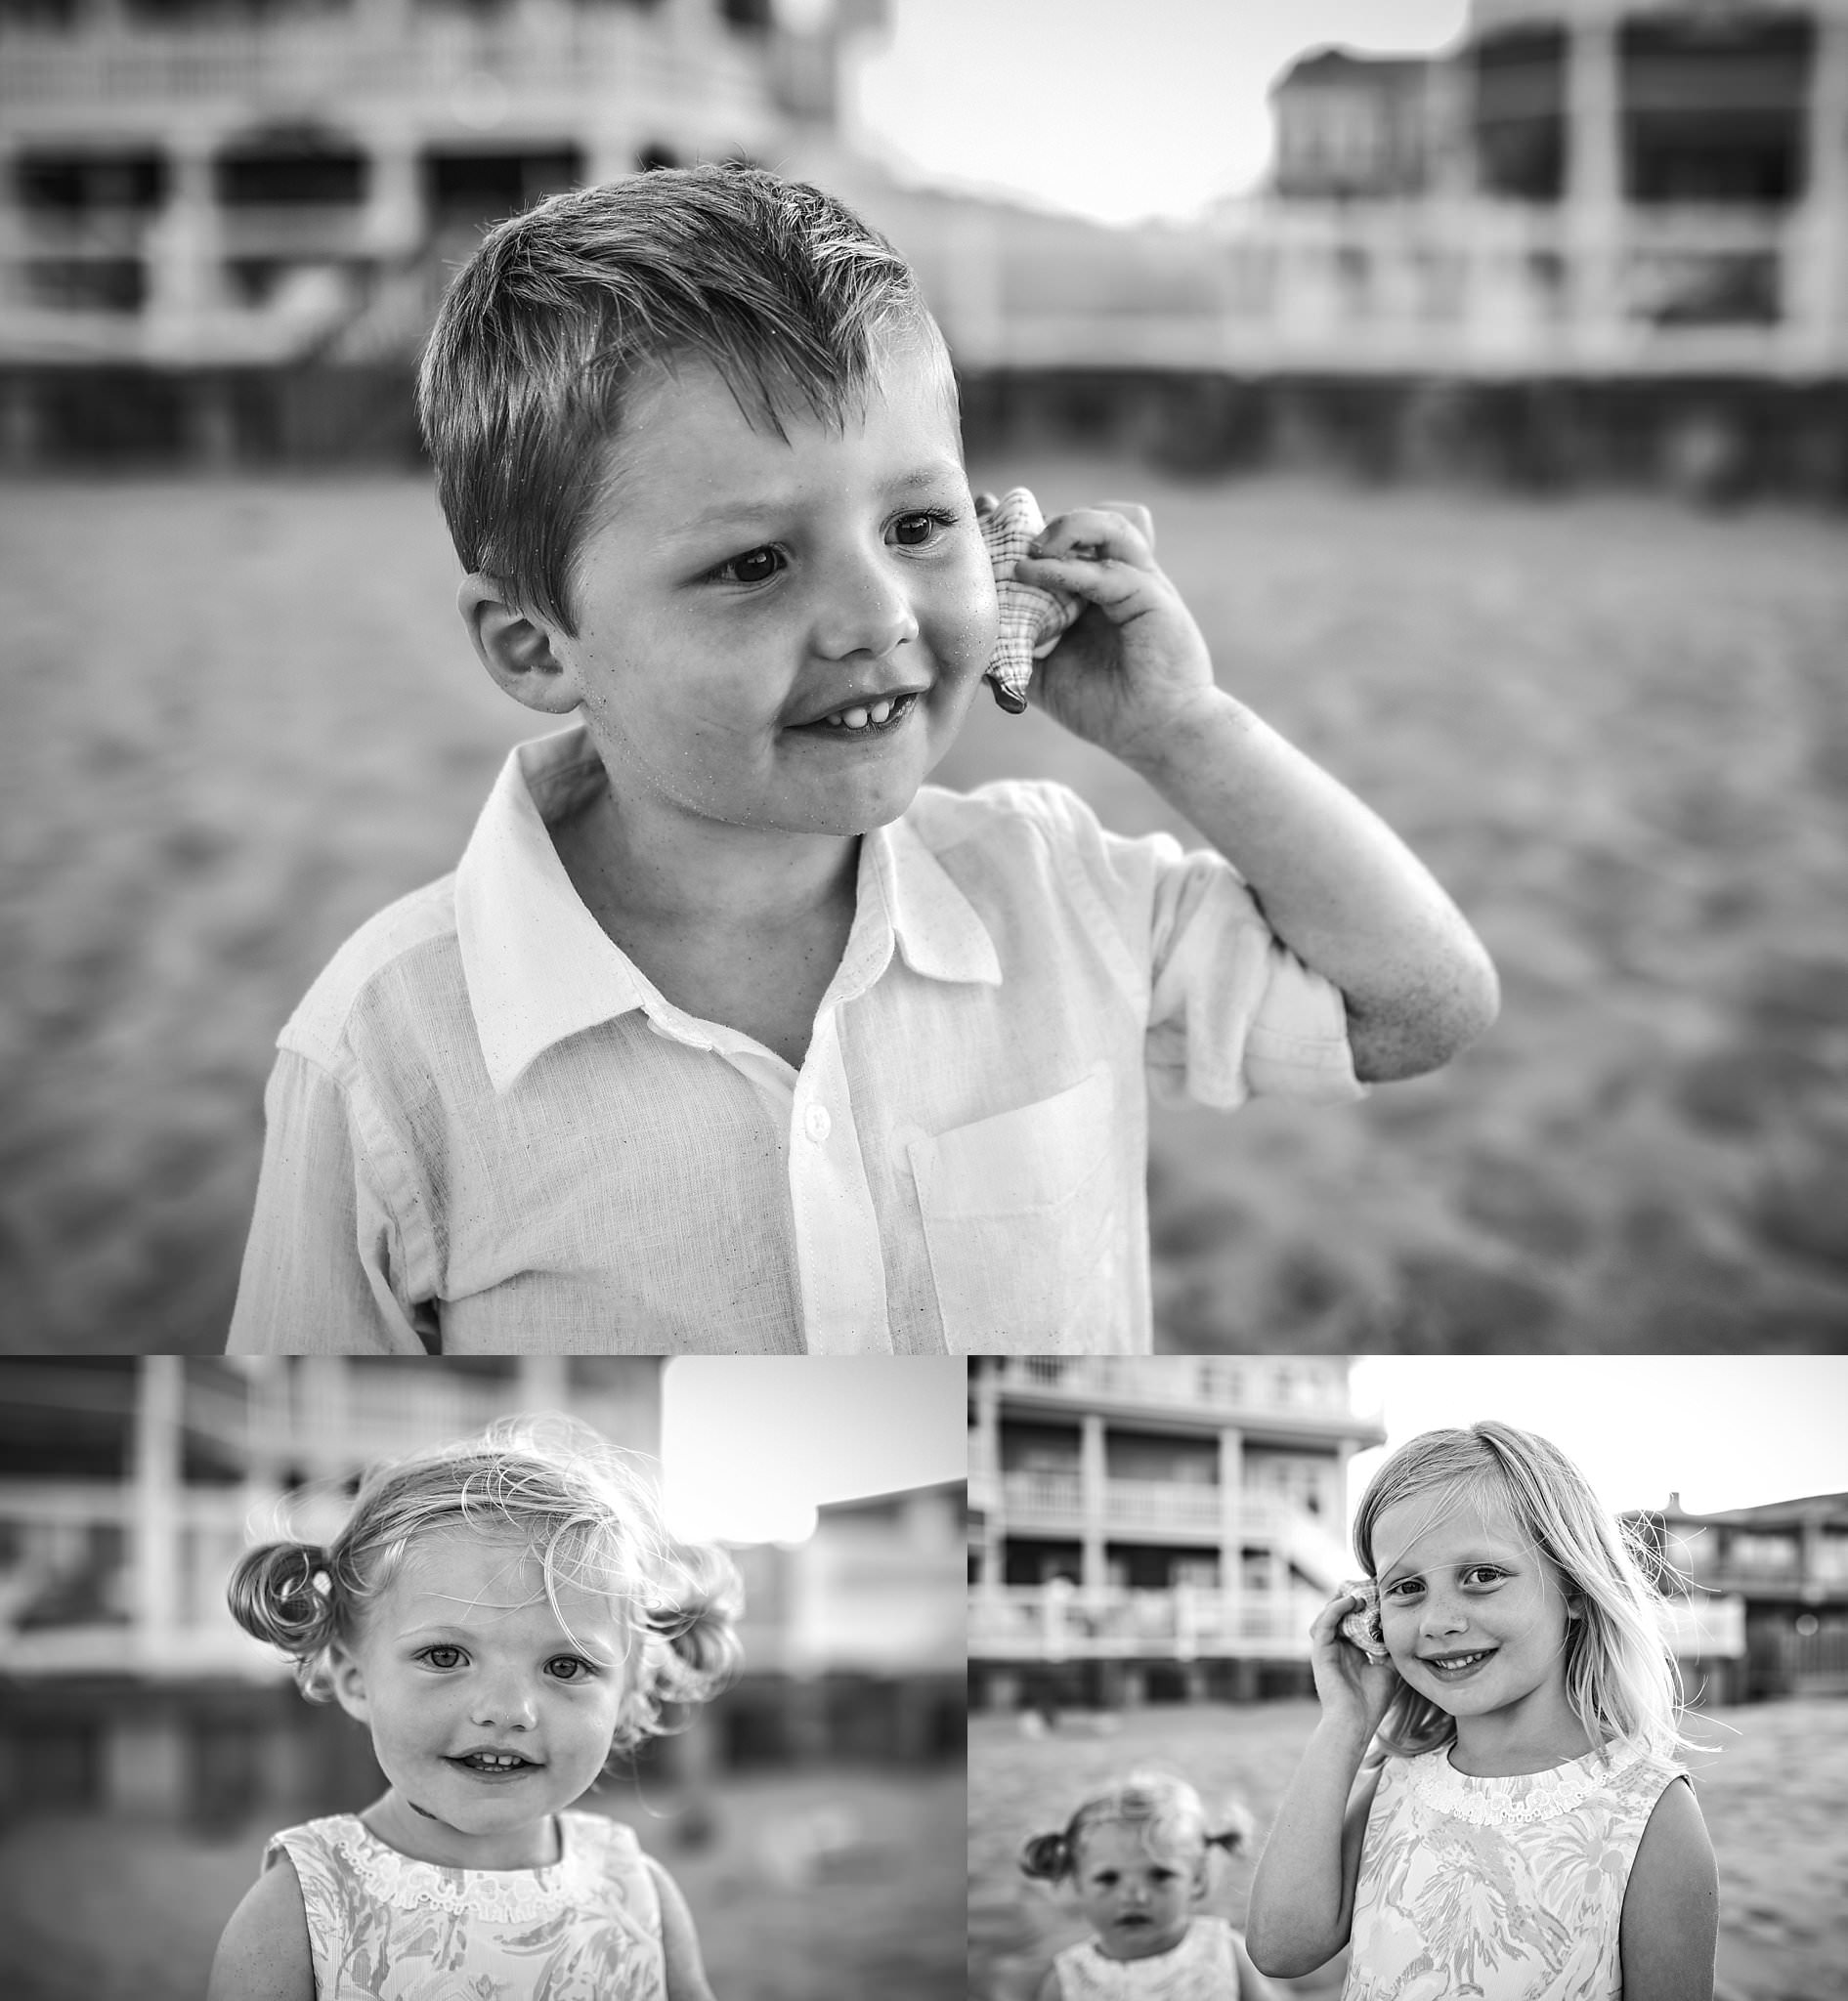 kids-with-seashells-on-sanbridge-beach-pictures-by-melissa-bliss-photography-virginia-beach.jpg